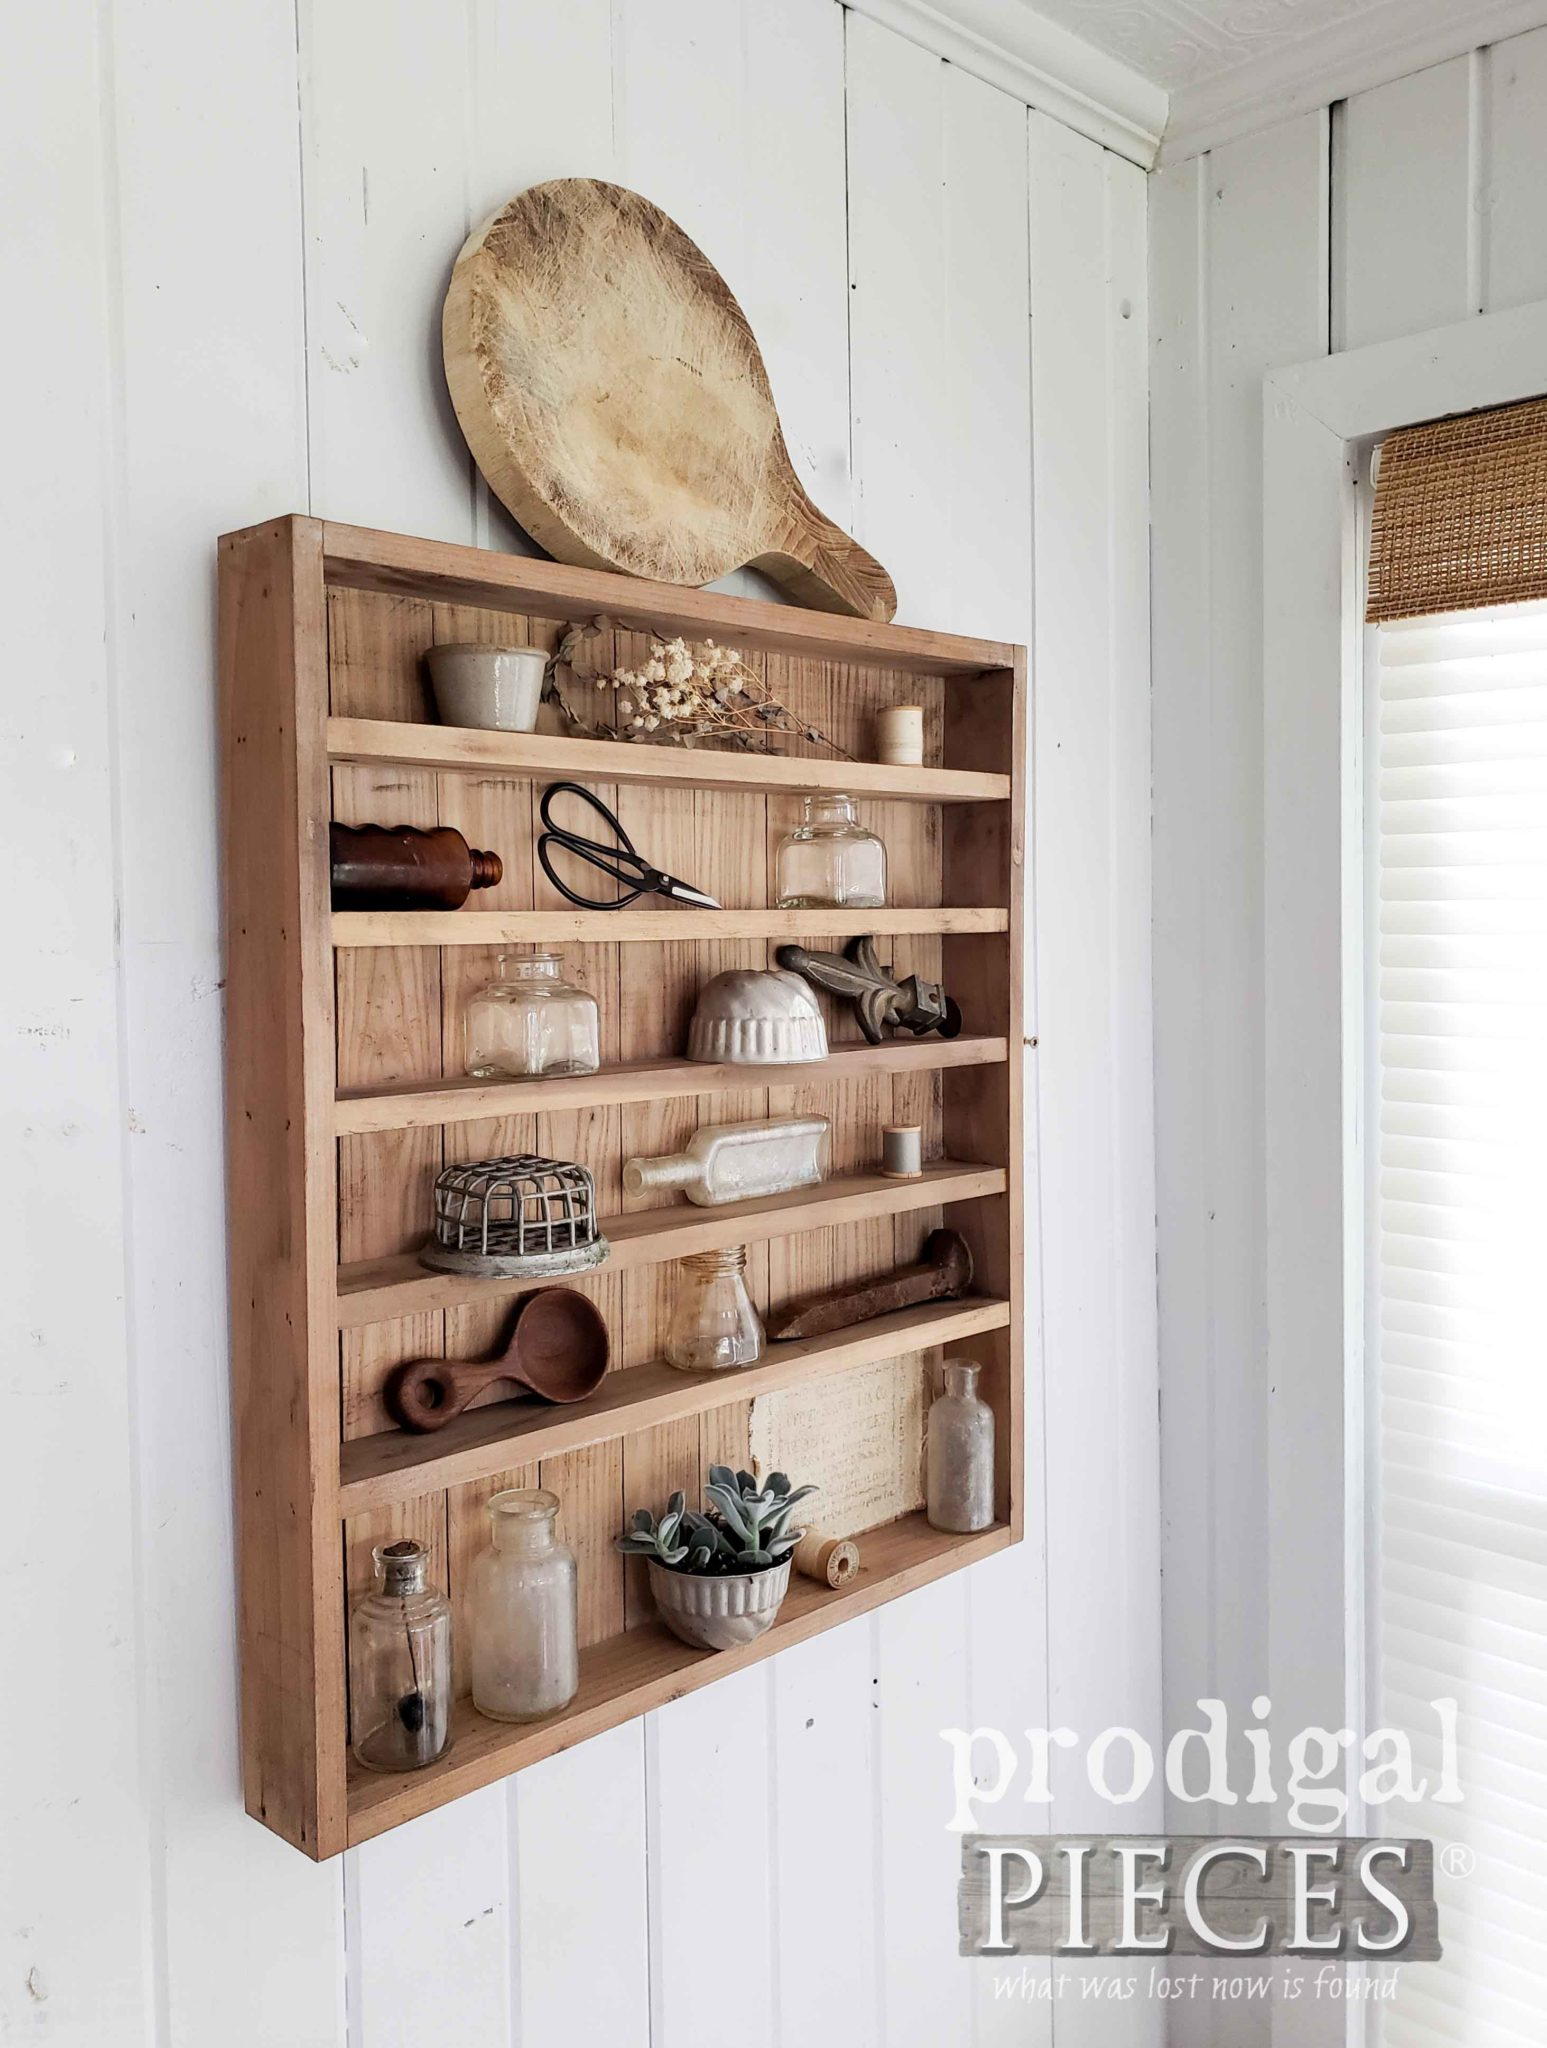 Handmade Apothecary Farmhouse Cabinet by Larissa of Prodigal Pieces | prodigalpieces.com #prodigalpieces #farmhouse #home #diy #homedecor